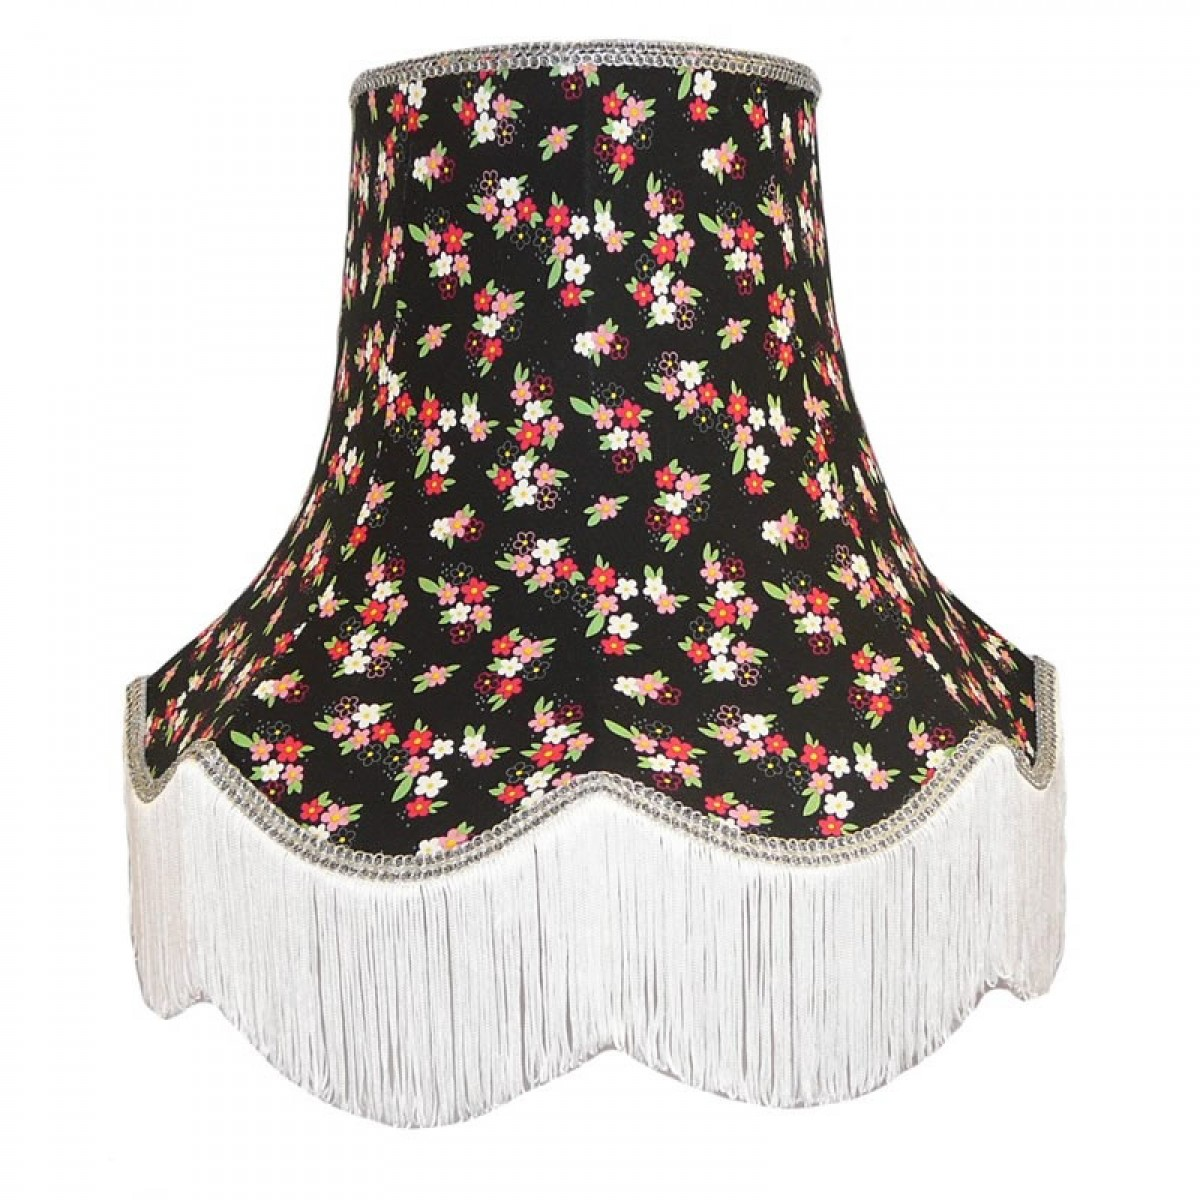 Black silver floral lampshade